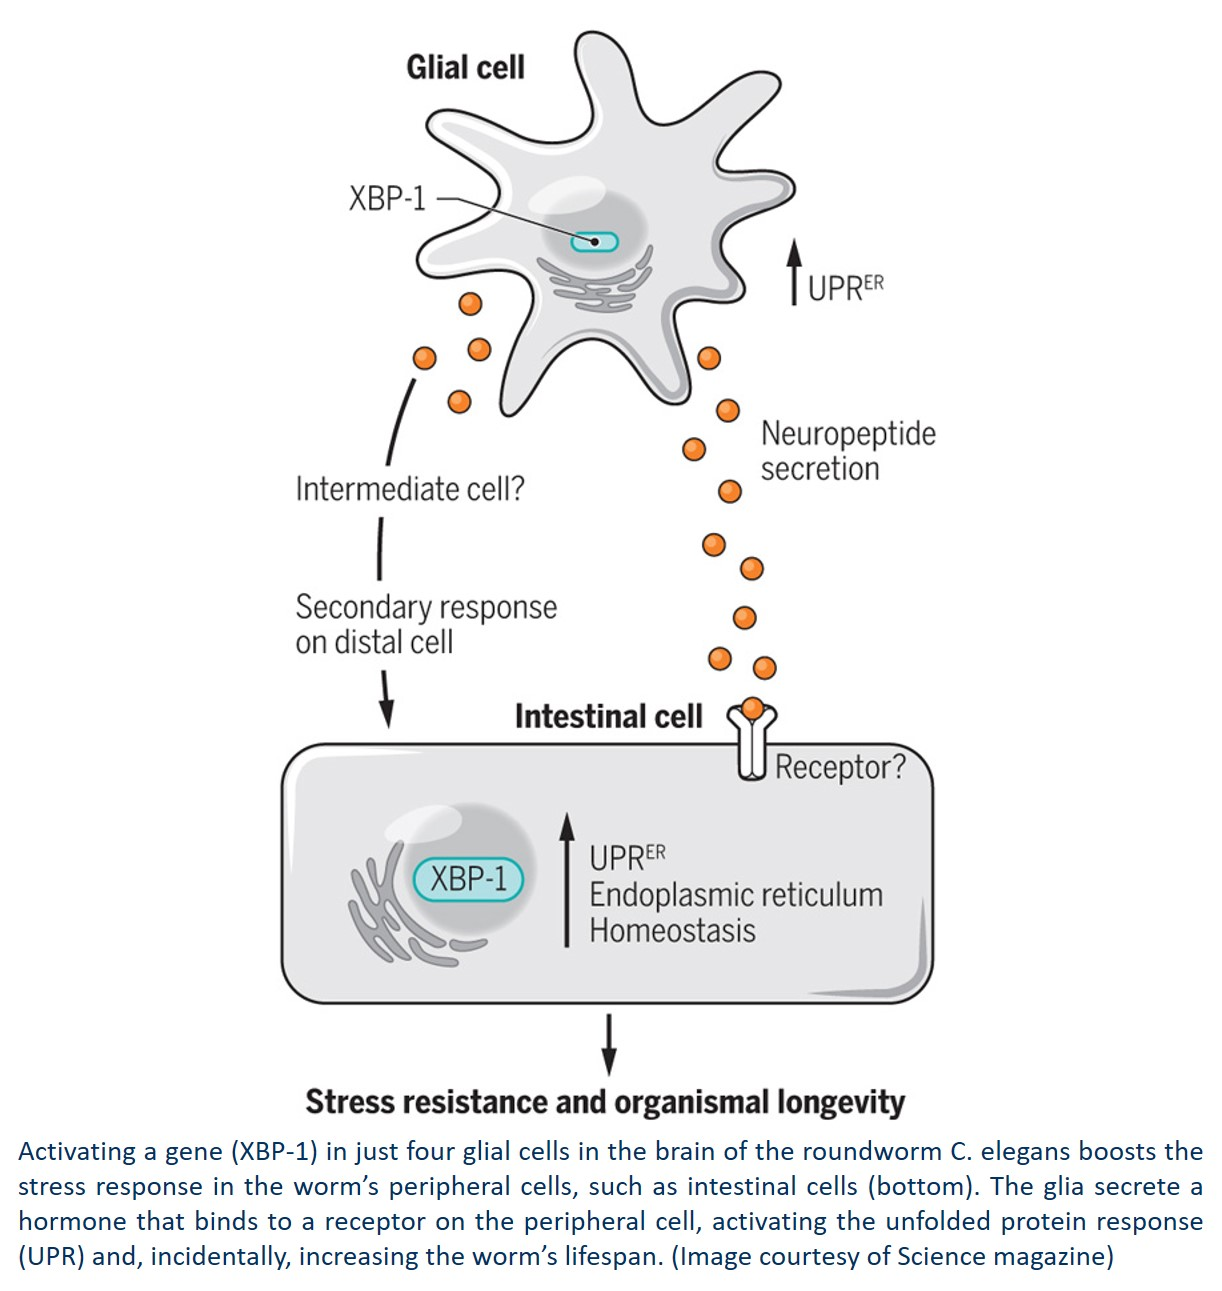 Glial cells control the stress response and increase the lifespan